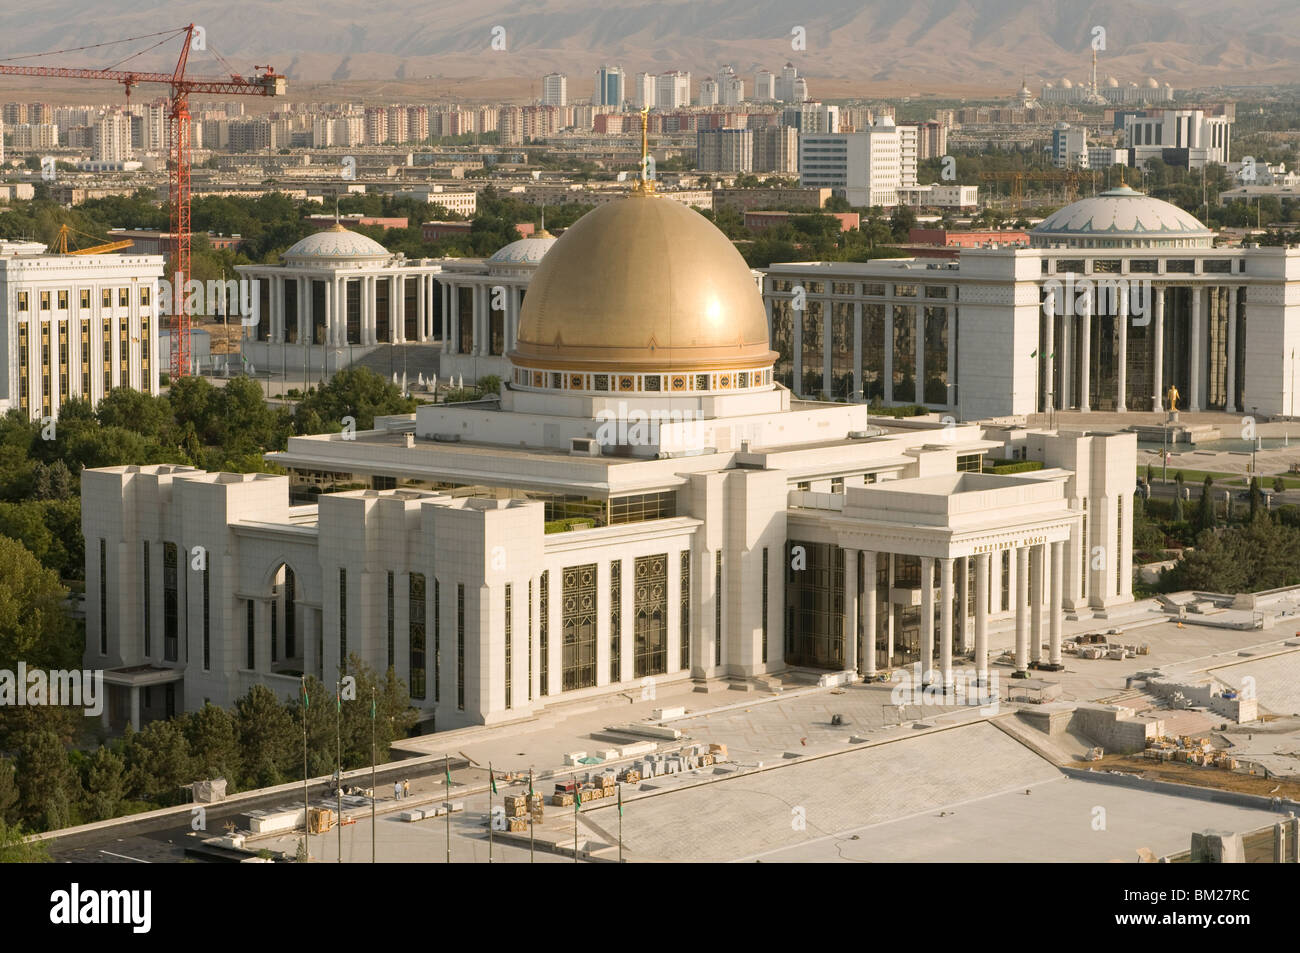 Imposing Parliament Palace with cupola, Ashgabad, Turkmenistan, Central Asia, Asia - Stock Image